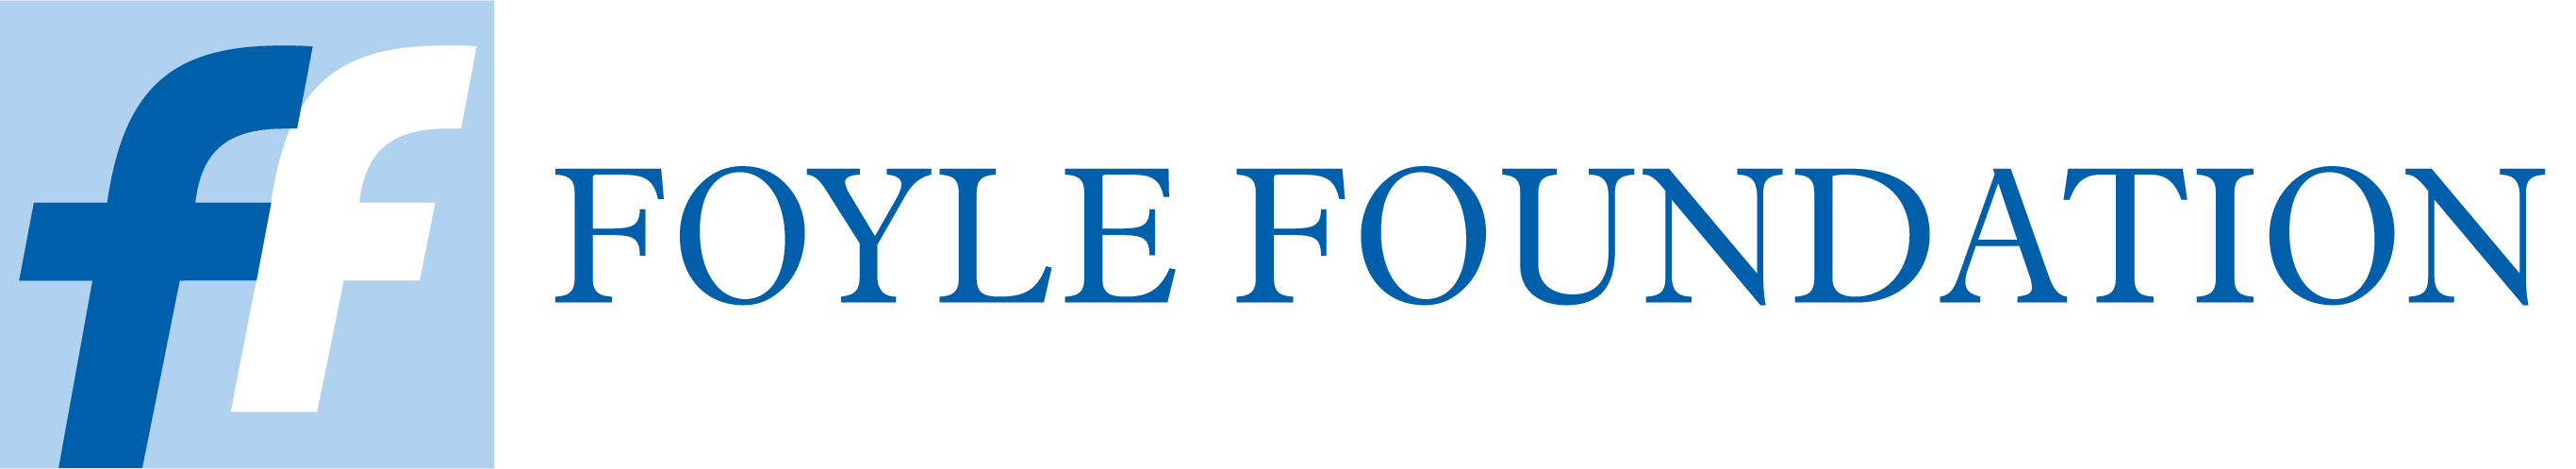 Foyle Foundation logo | The Met